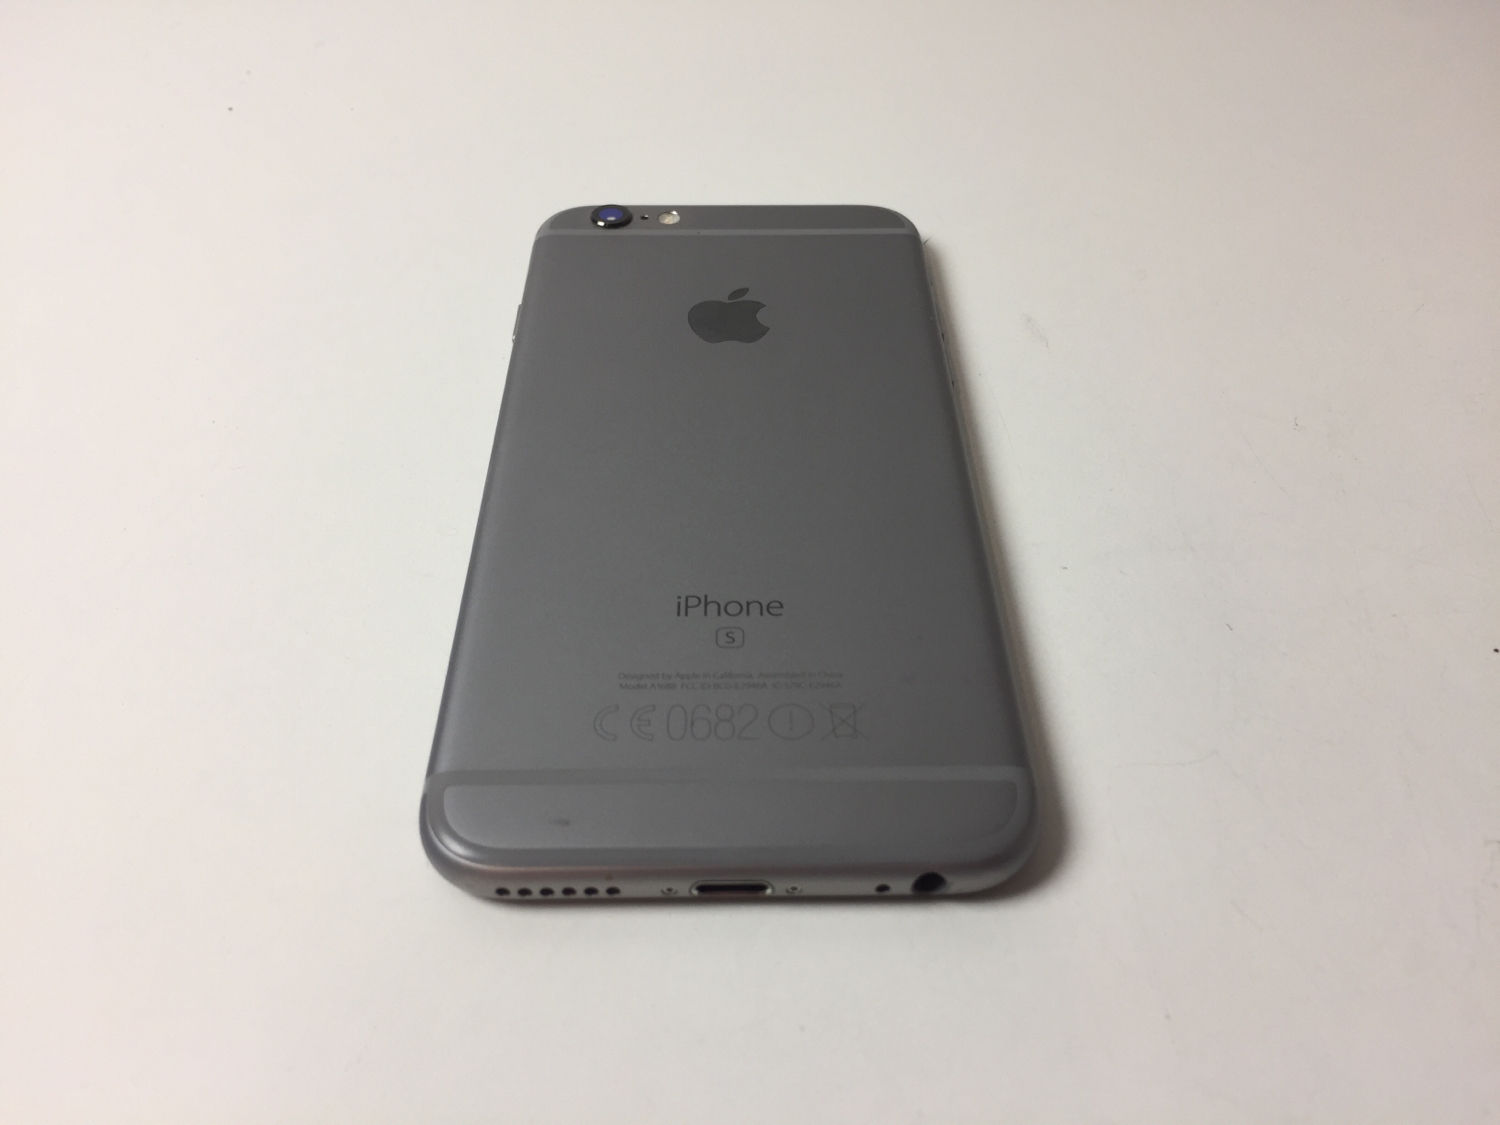 iPhone 6S 64GB, 64GB, SPACE GRAY, obraz 3